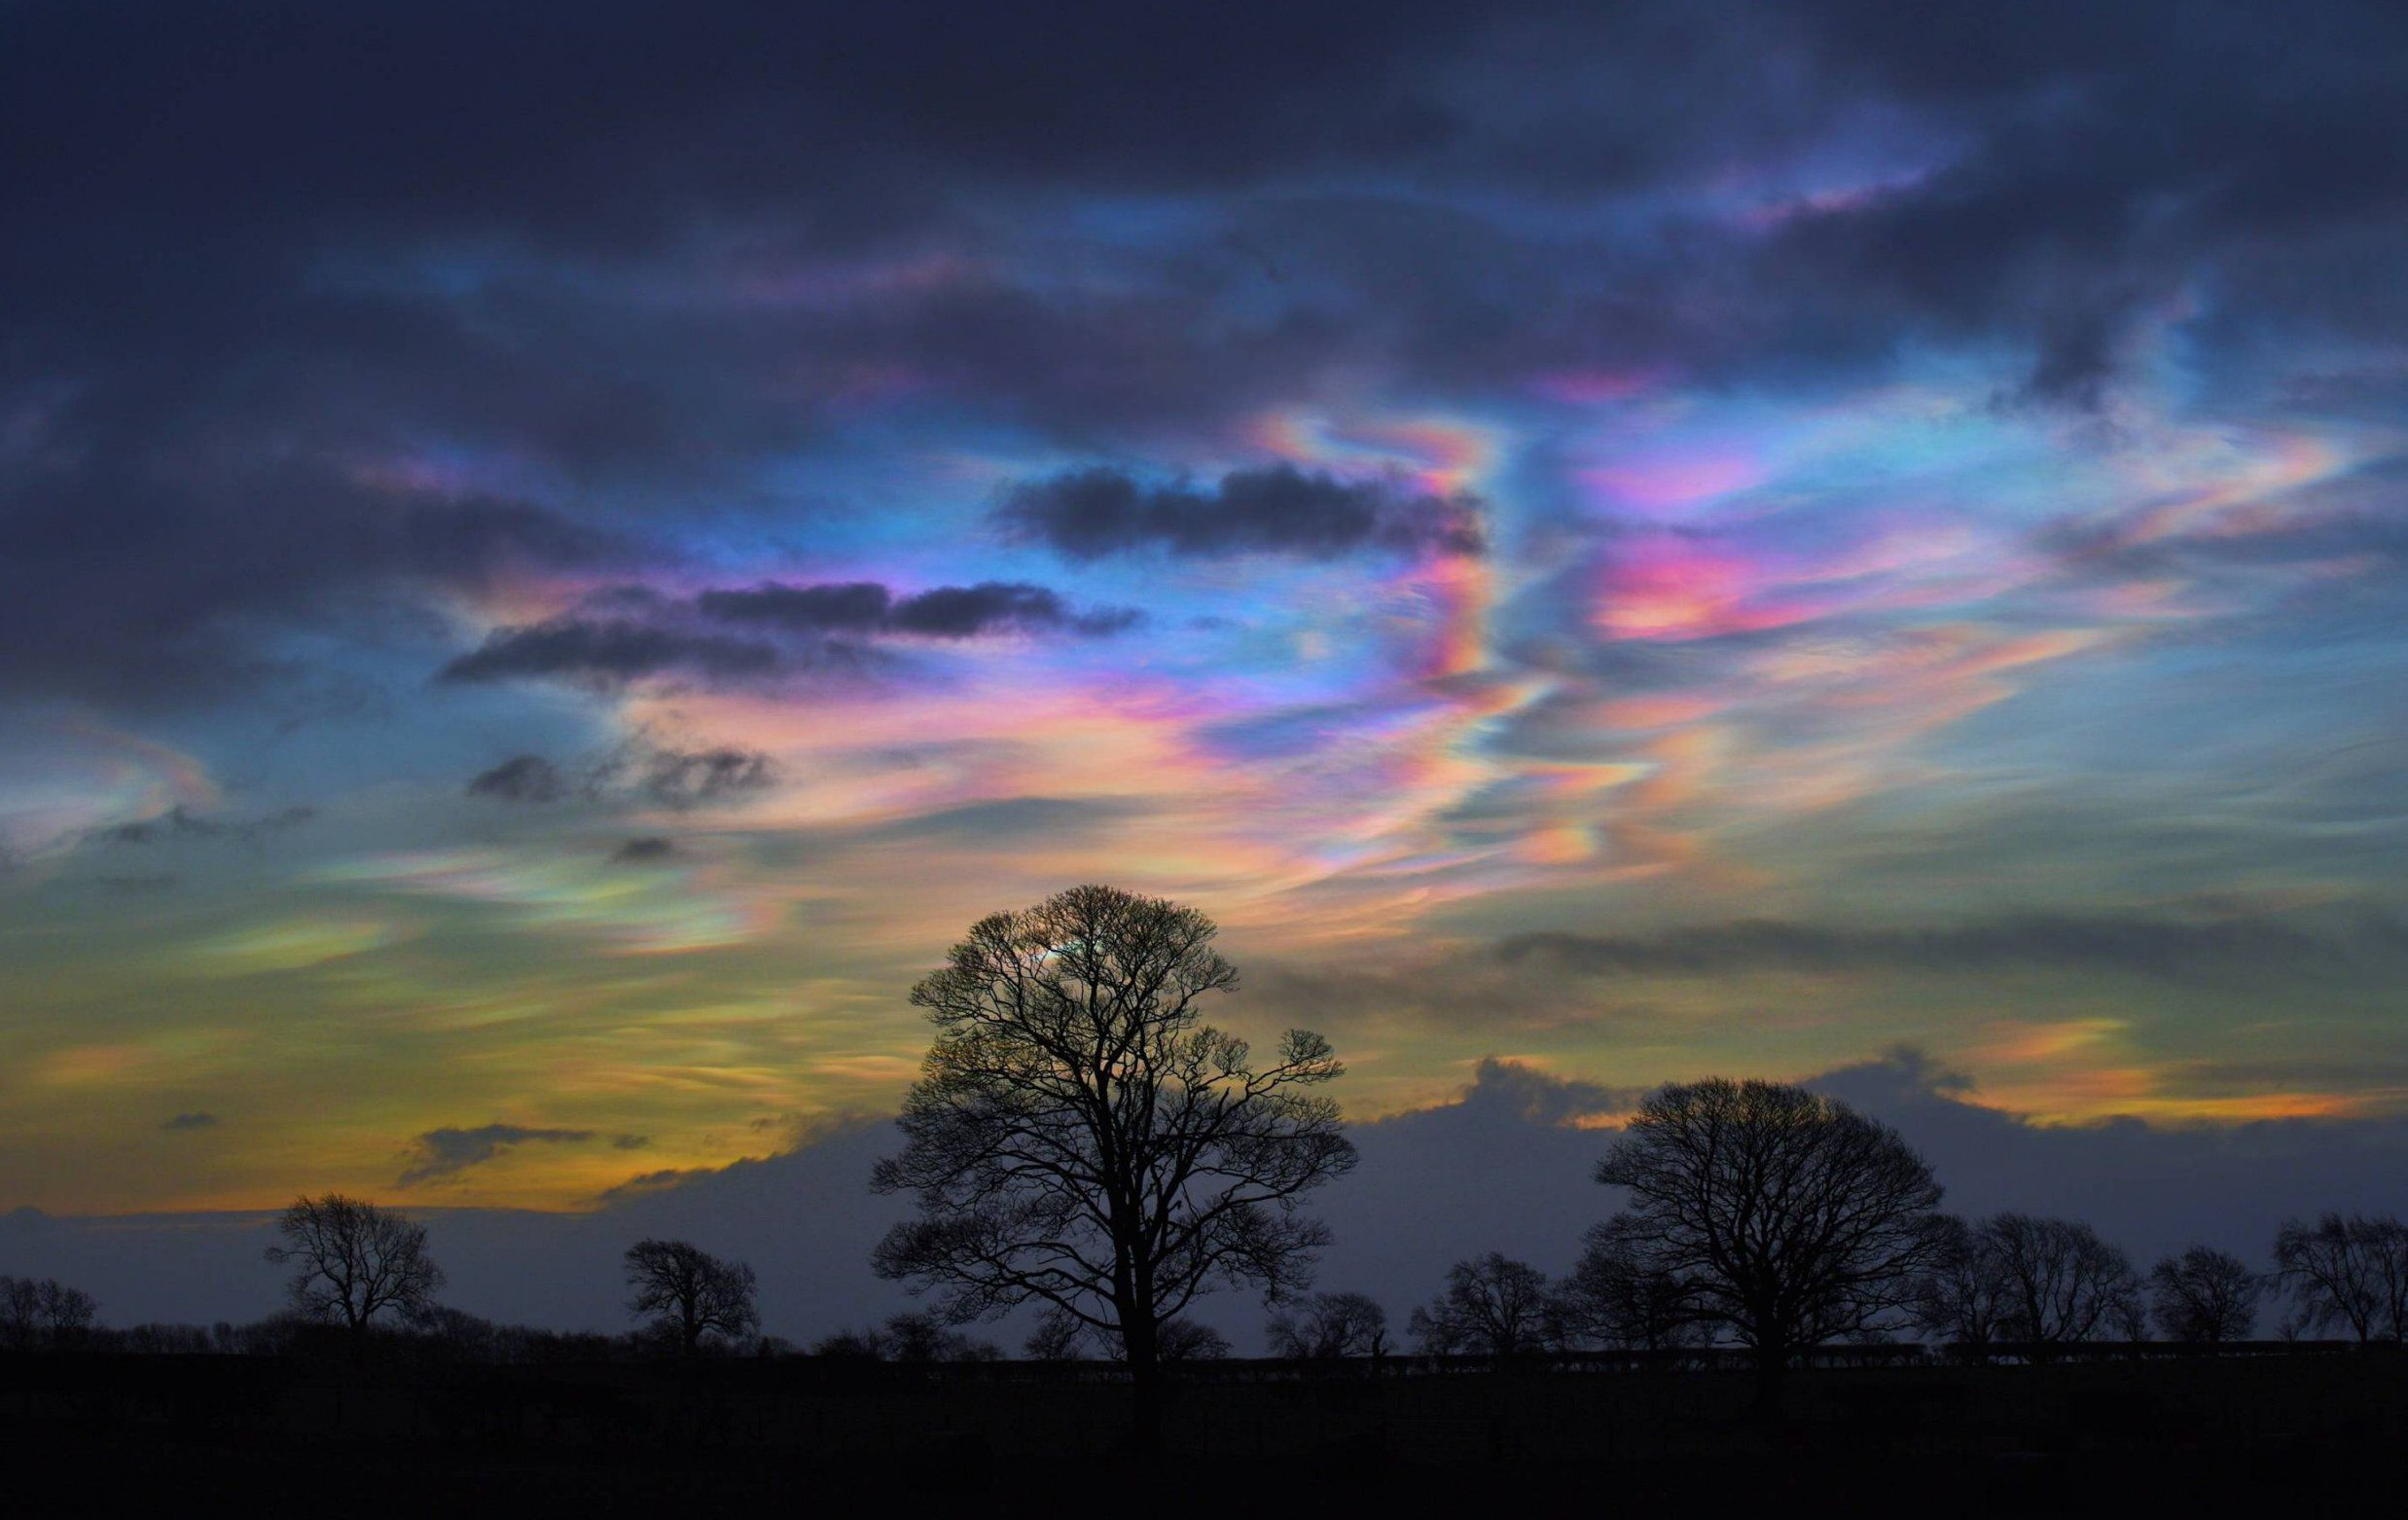 """Dated: 02/02/2016 Storm Henry introduced very rare Nacreous clouds to form over the UK, pictured is the """"Mother of Pearl"""" clouds shining their iridescent colours over Teesdale, County Durham before dawn this morning (Tues). These clouds form in temperatures around -80C and reach heights between 50,000ft to 85,000ft in the stratosphere and more commonly seen in the polar regions"""